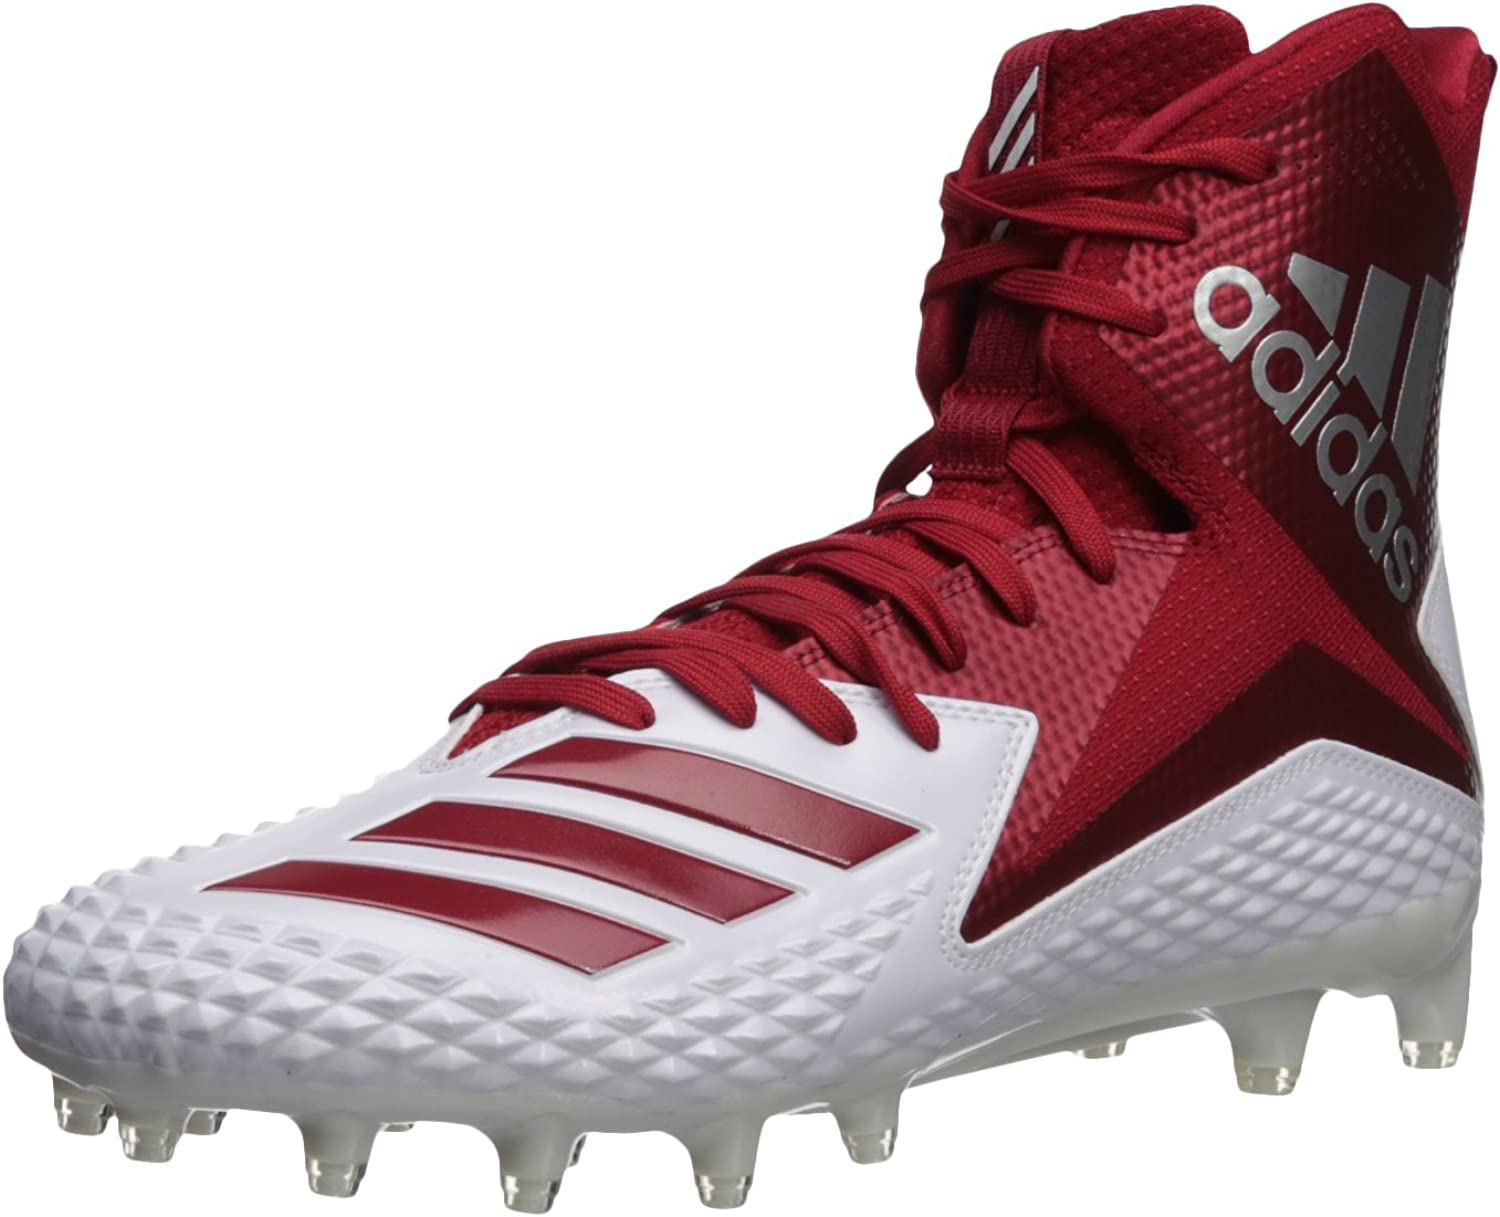 Adidas Men's Freak X Carbon Mid Football shoes, White Power red, 11 M US